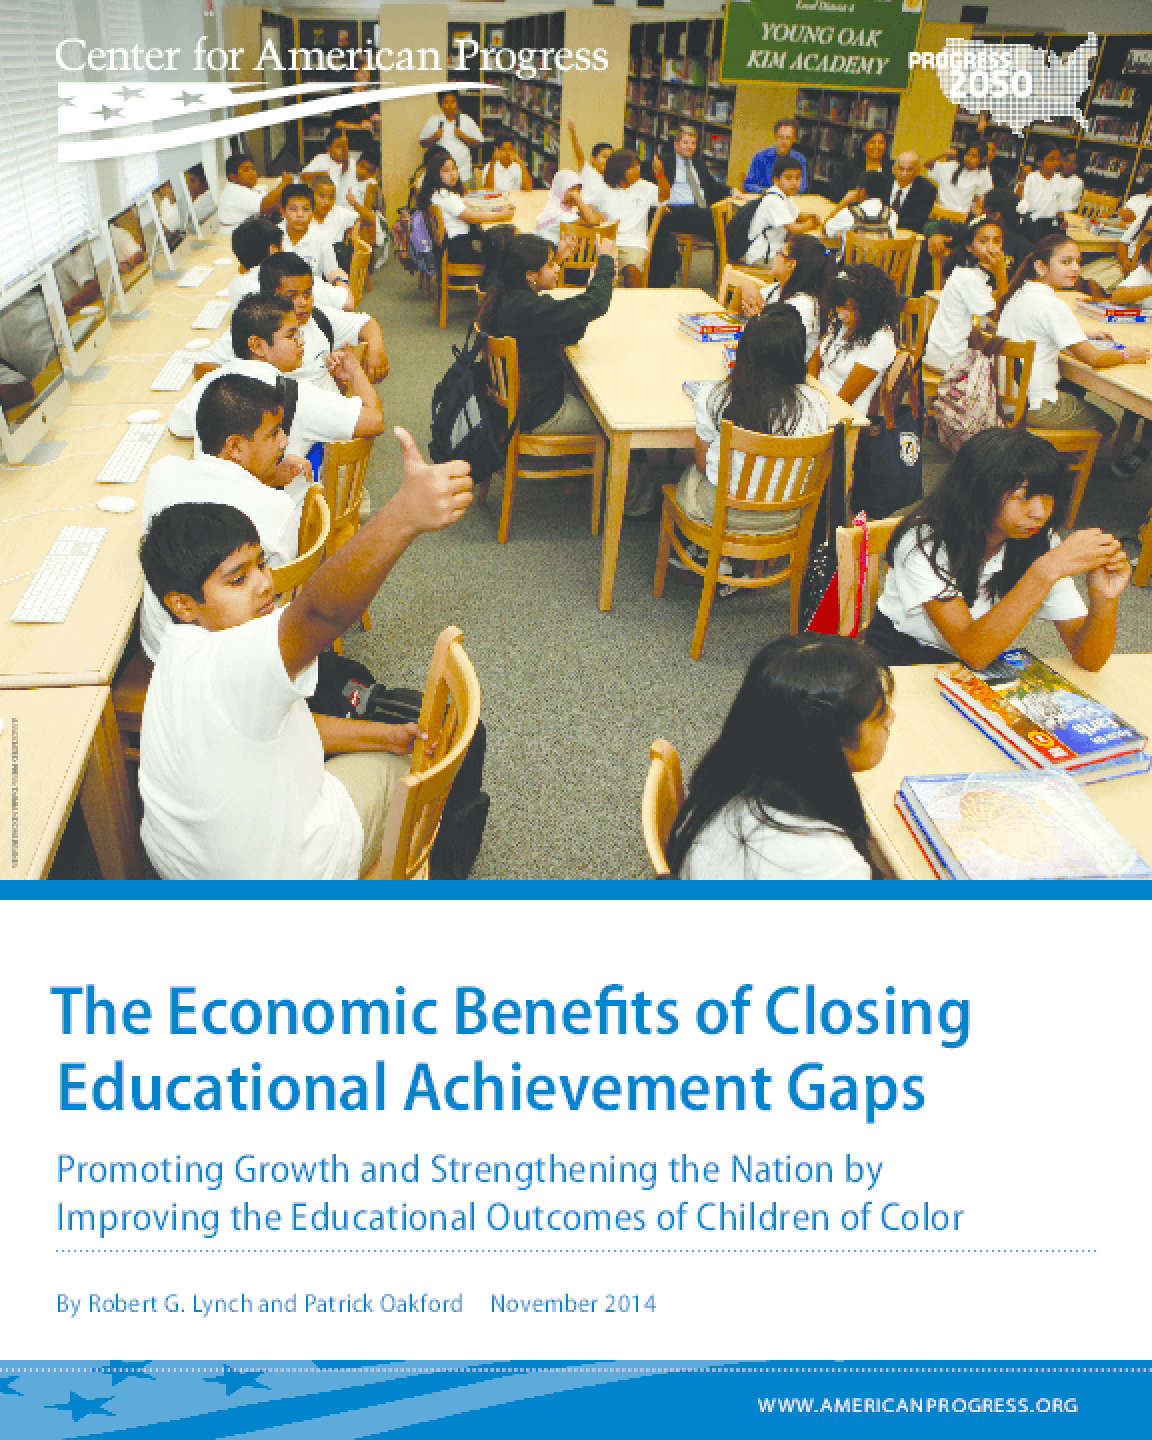 The Economic Benefits of Closing Educational Achievement Gaps: Promoting Growth and Strengthening the Nation by Improving the Educational Outcomes of Children of Color